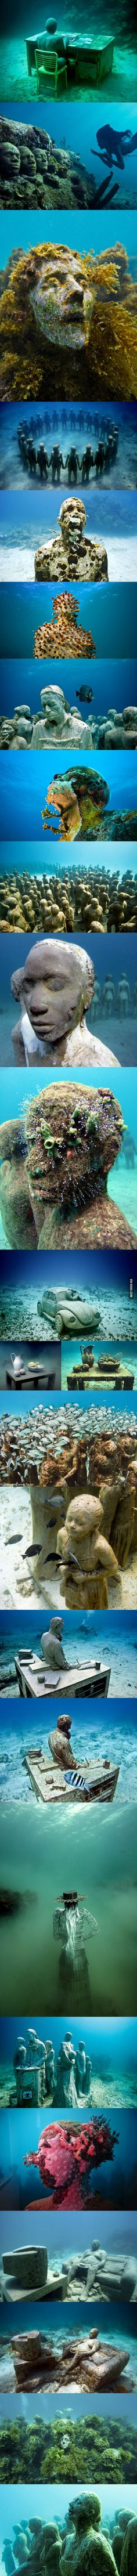 Underwater statues by artist Jason deCaires Taylor get slowly engulfed by moss and plants overtime.